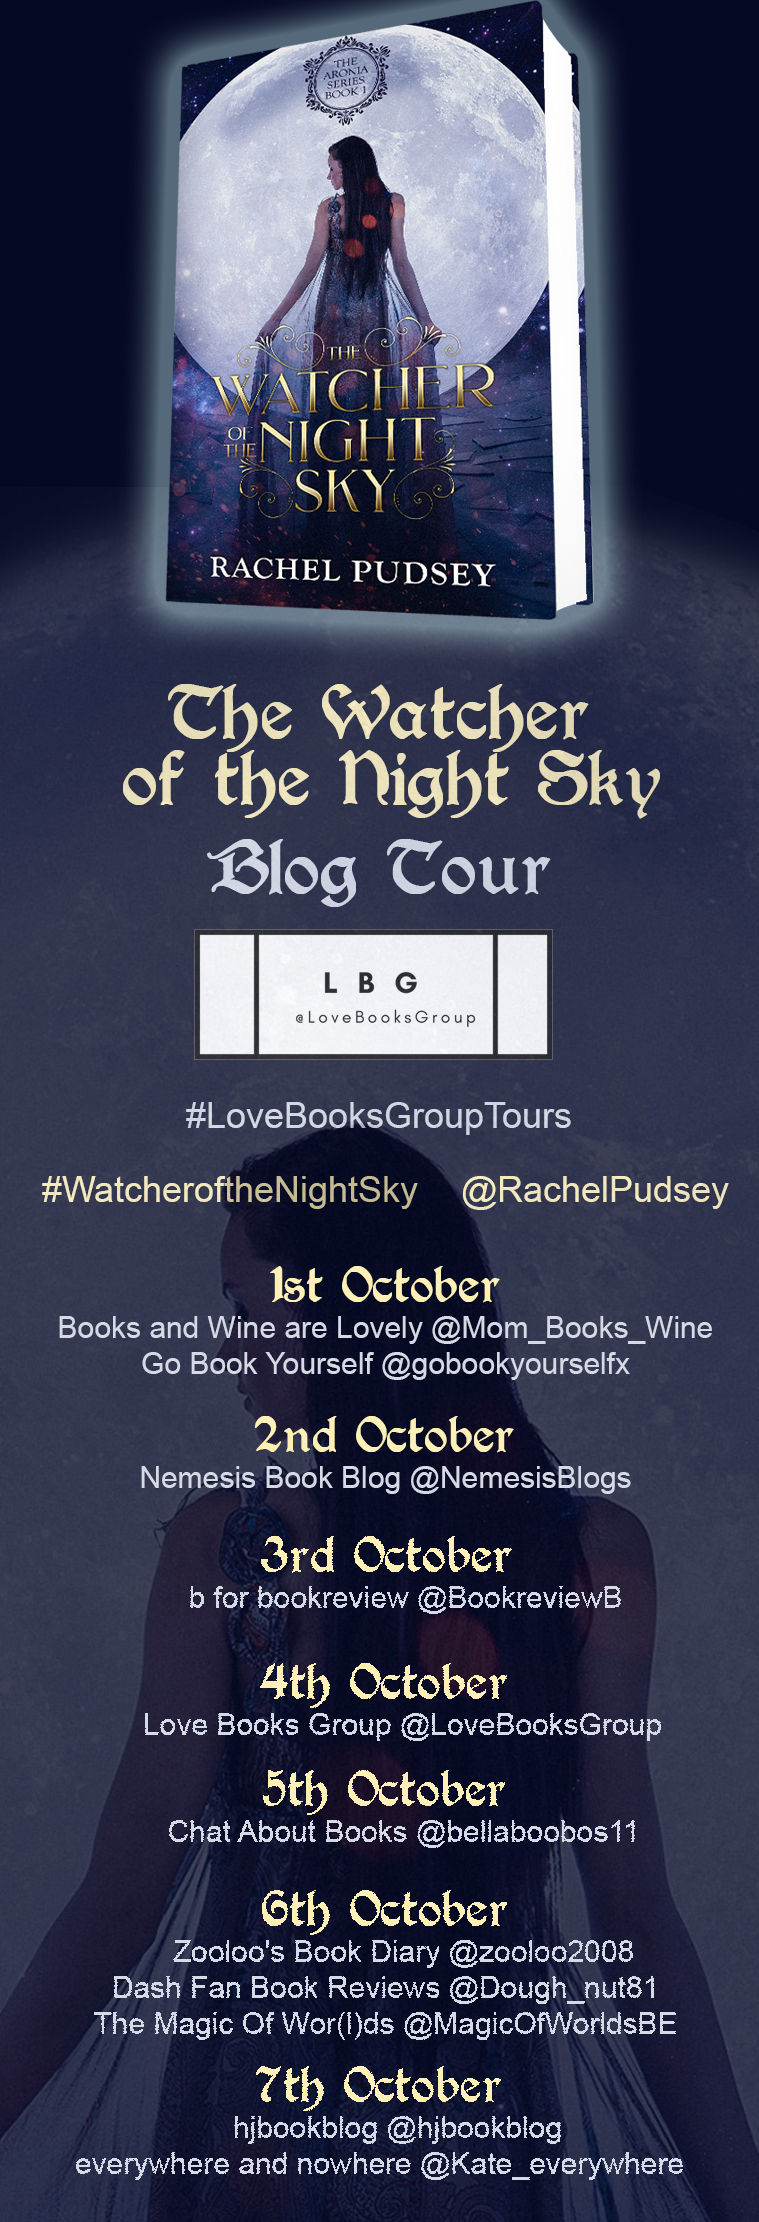 #Excerpt from The Watcher of the Night Sky by Rachel Pudsey @RachelPudsey   #WatcheroftheNightSky #LoveBooksGroupTours